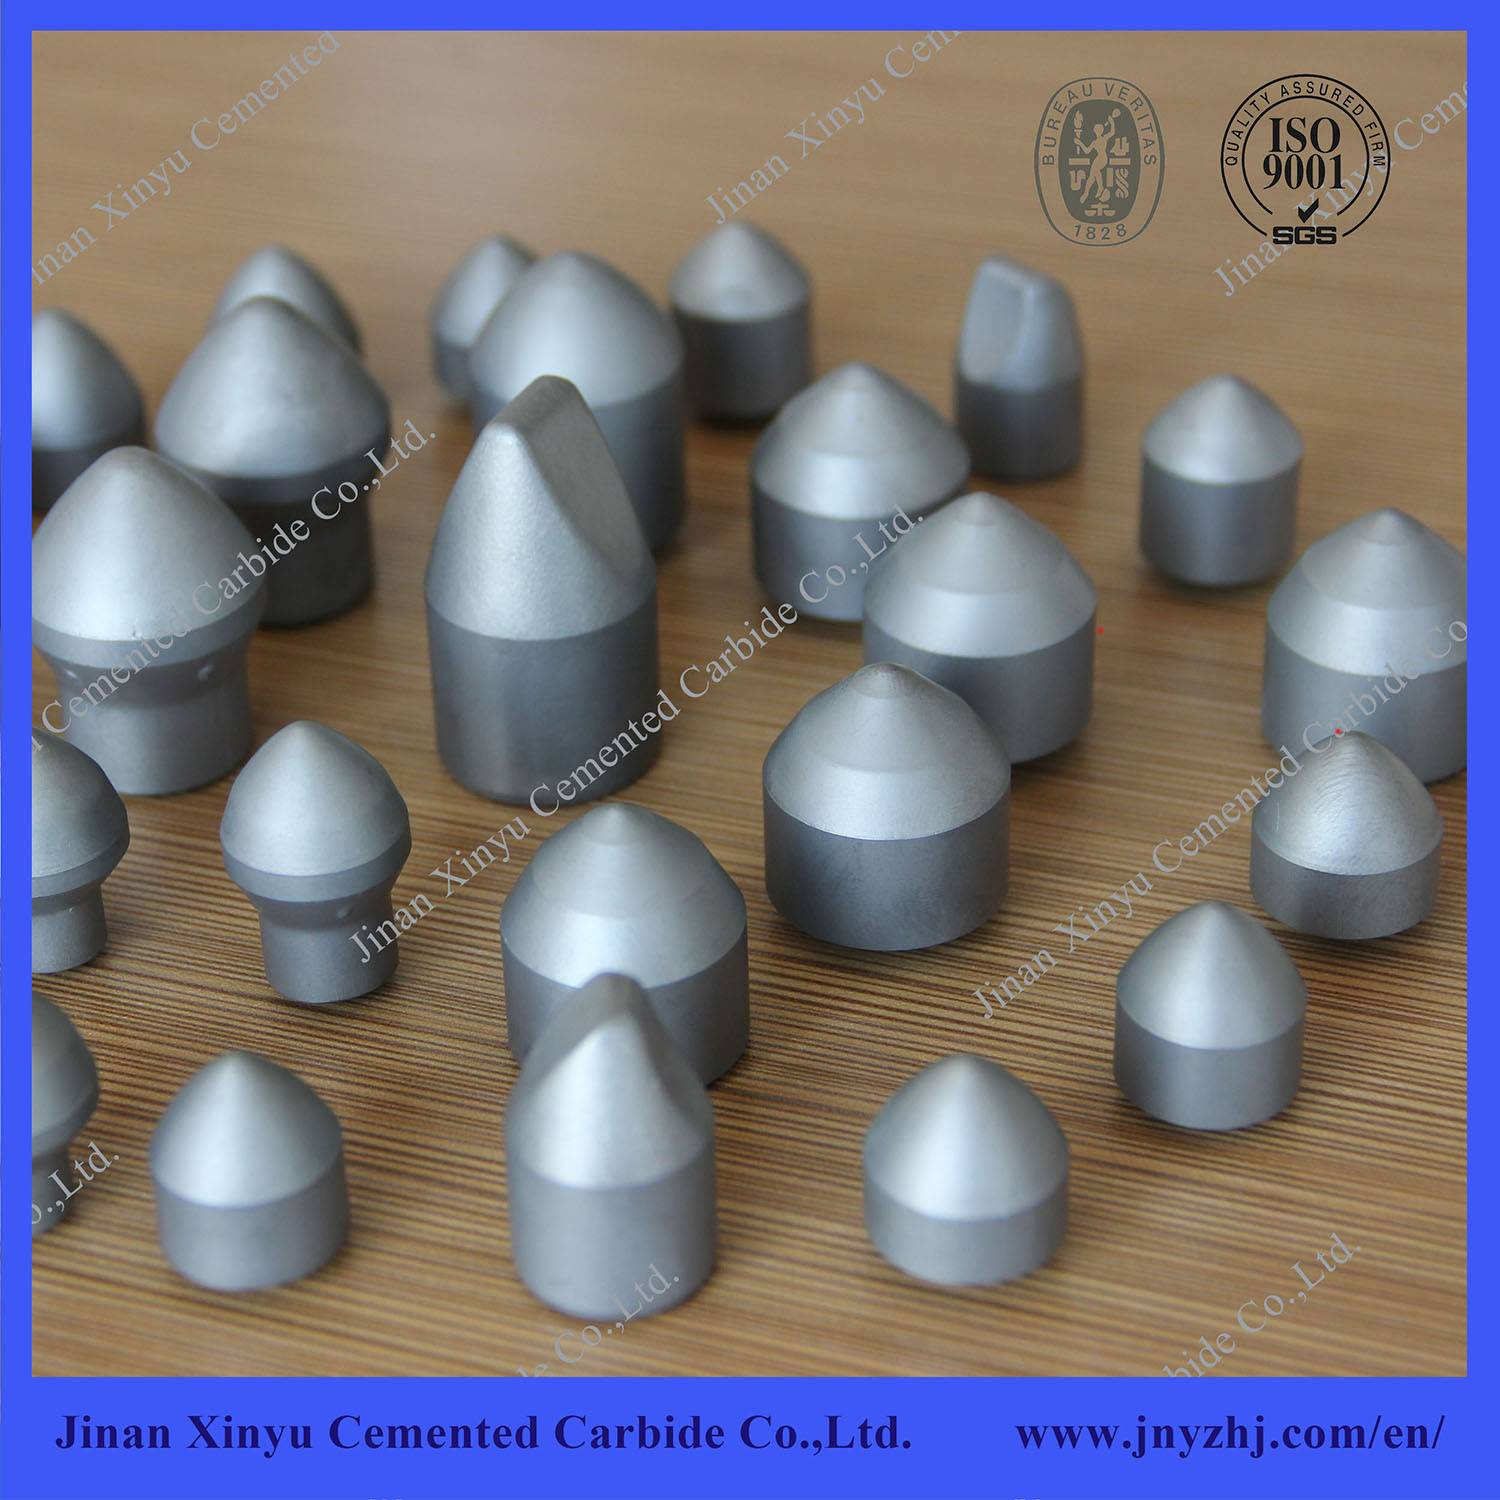 Cemented Carbide Auger Tips